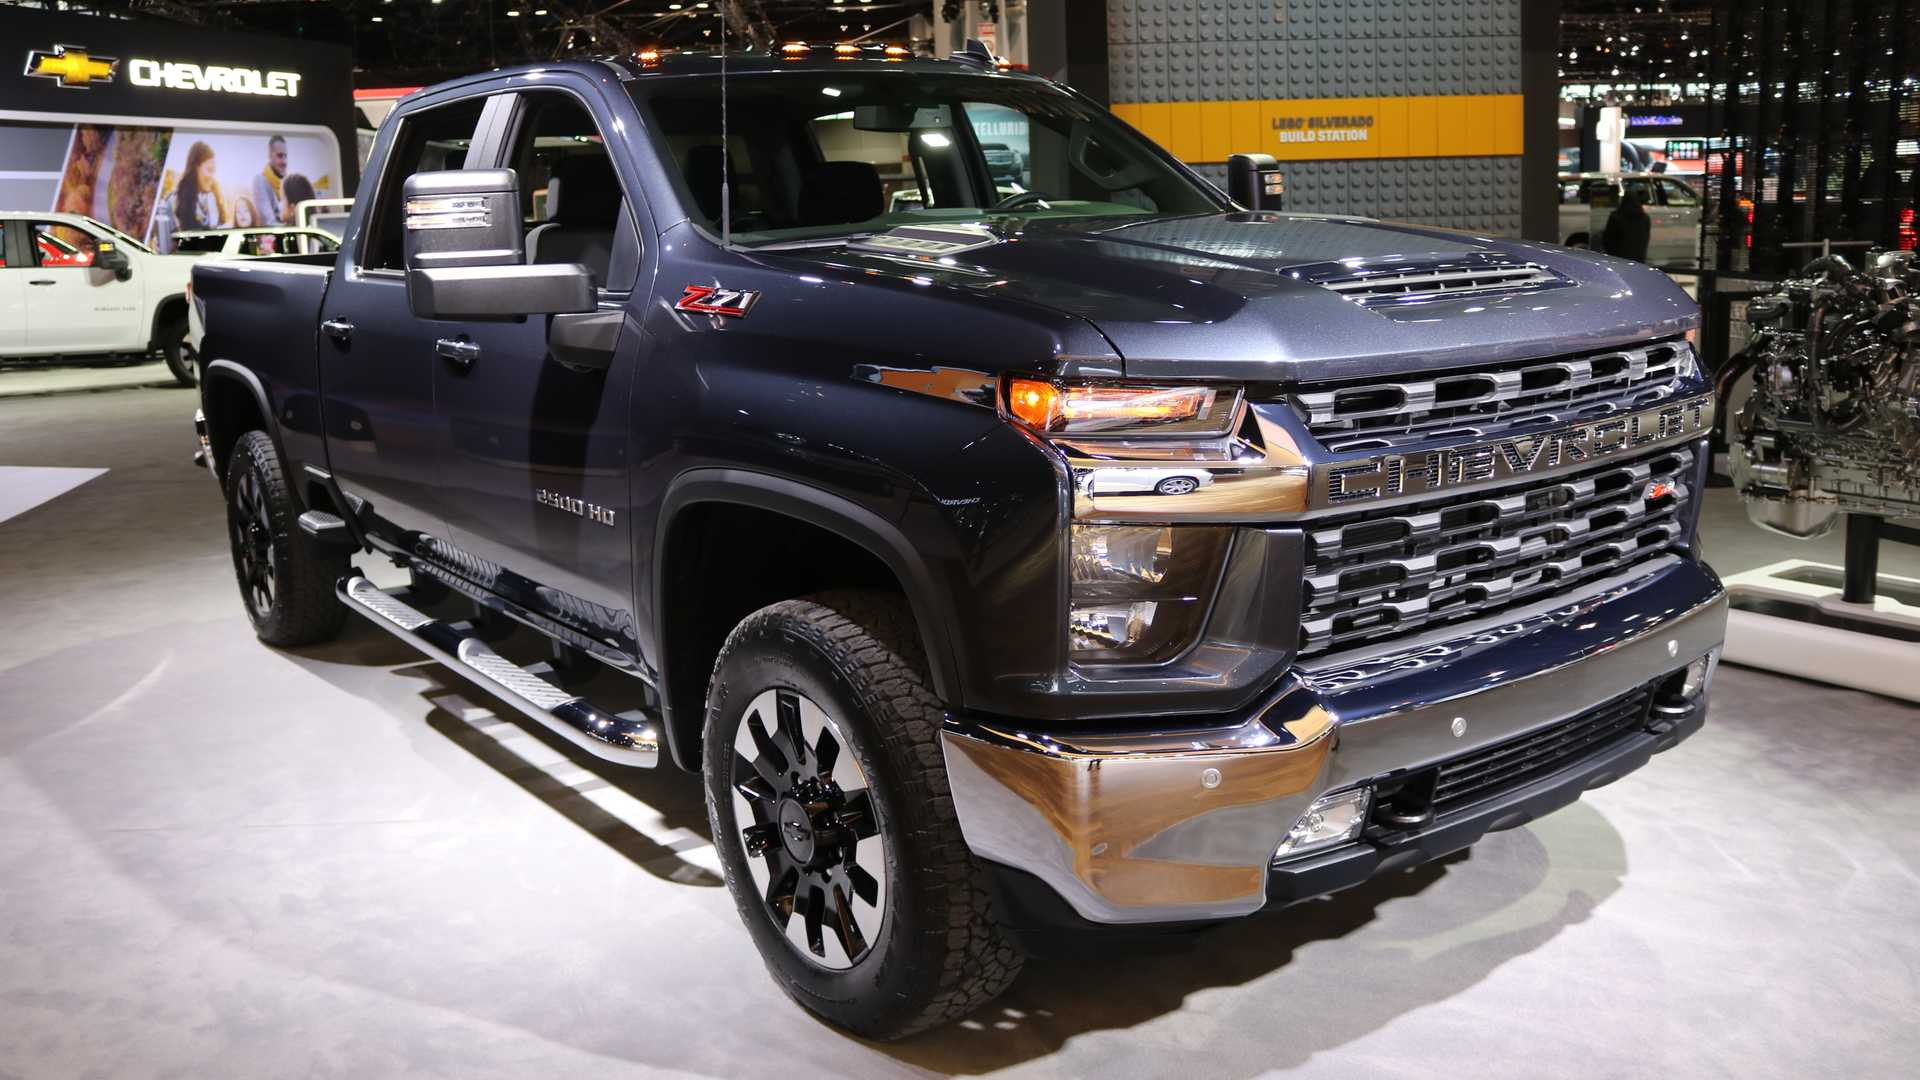 29 Great 2020 Chevrolet Silverado Z71 Price and Review by 2020 Chevrolet Silverado Z71